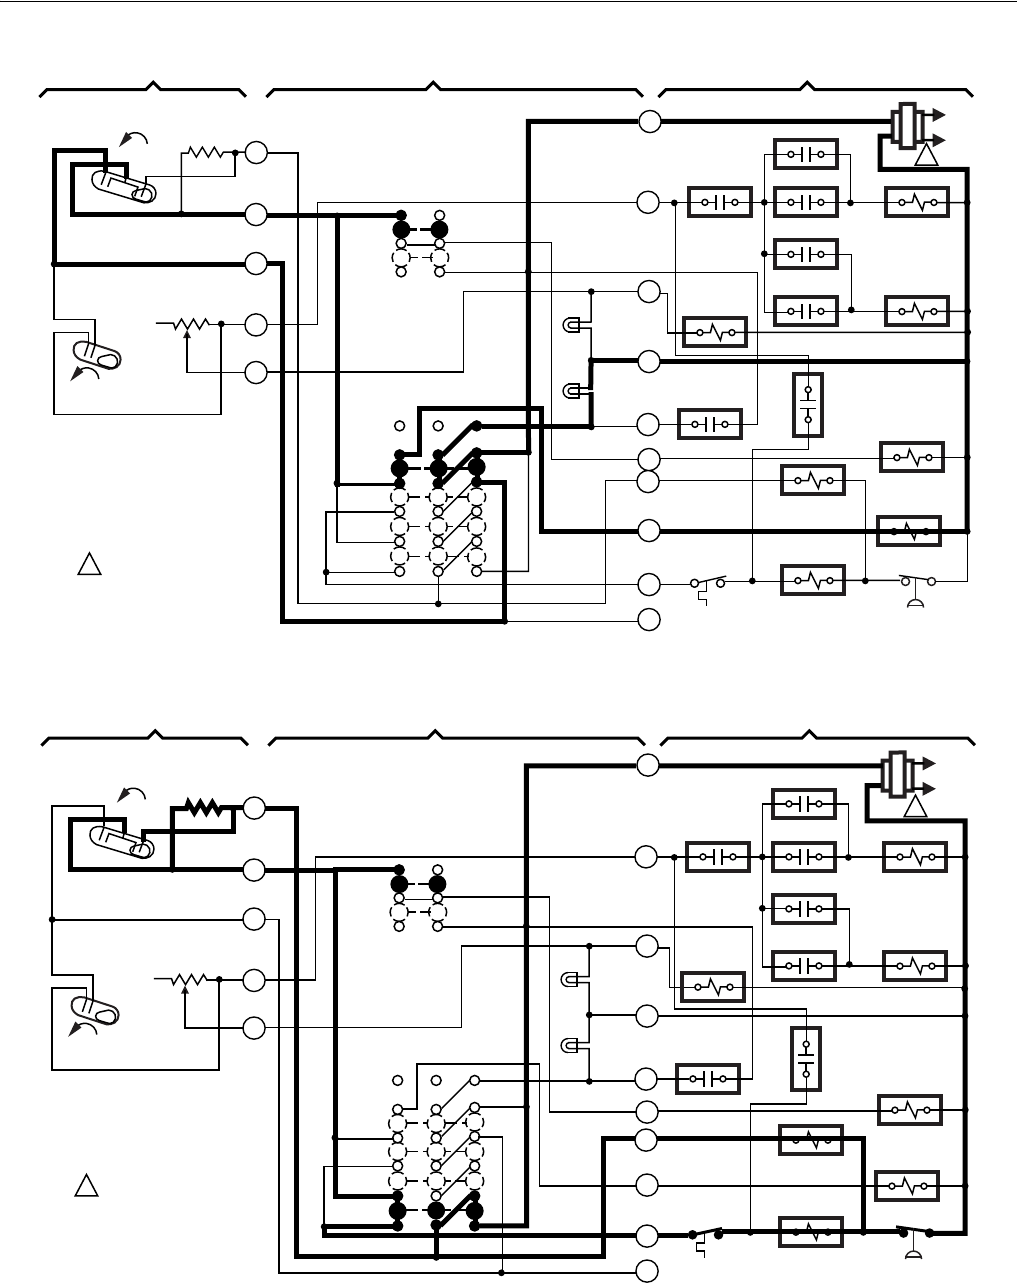 Simple Comfort 2200 Thermostat Wiring Diagram Non-fused